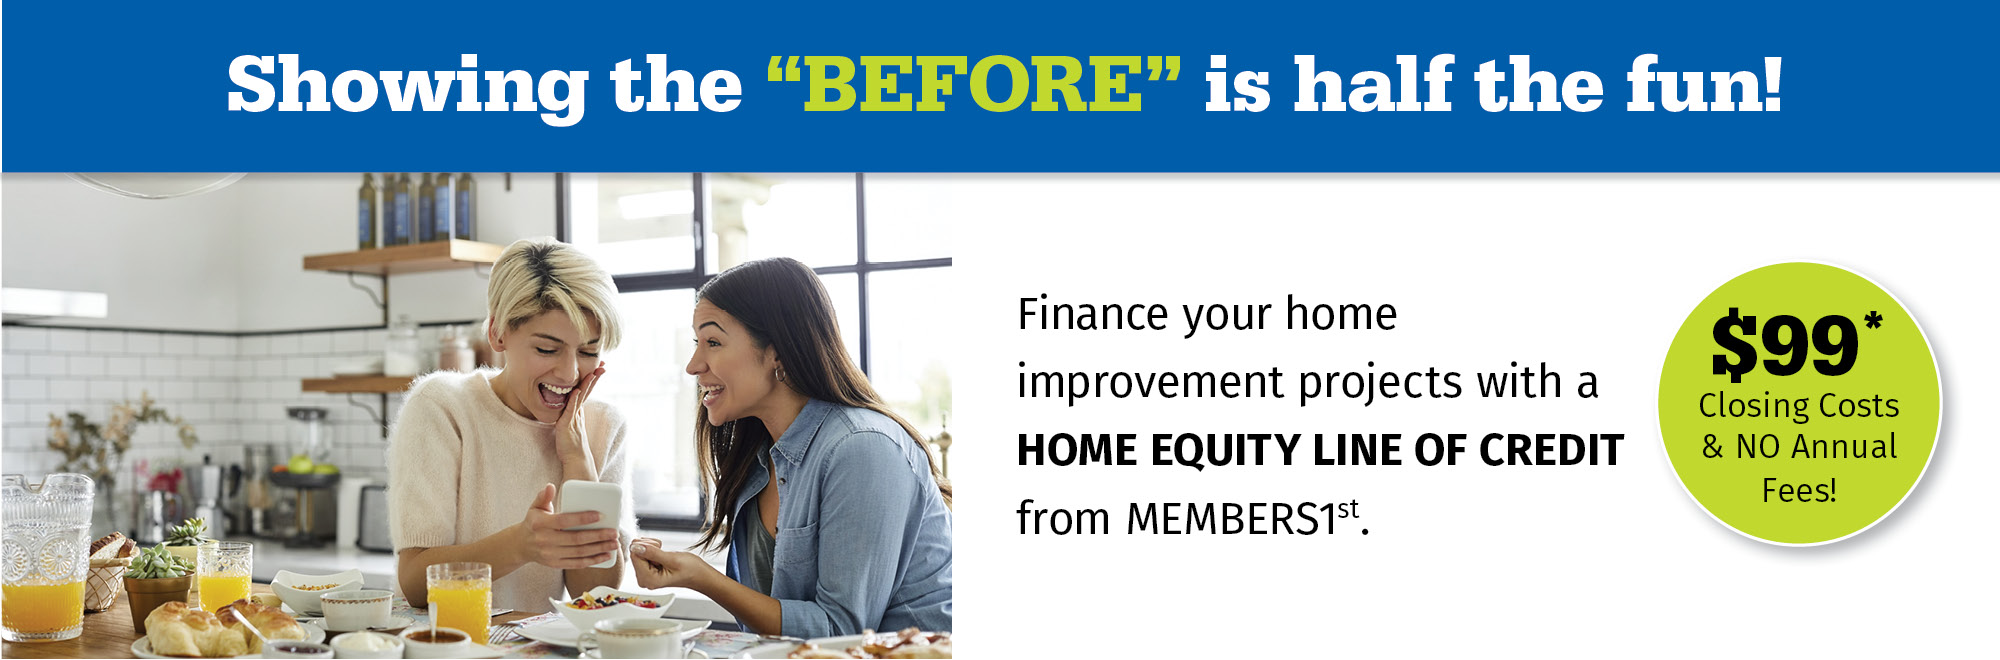 Finance your home improvement projects with a home equity line of credit from MEMBERS1st! $99 closing costs & no annual fees.